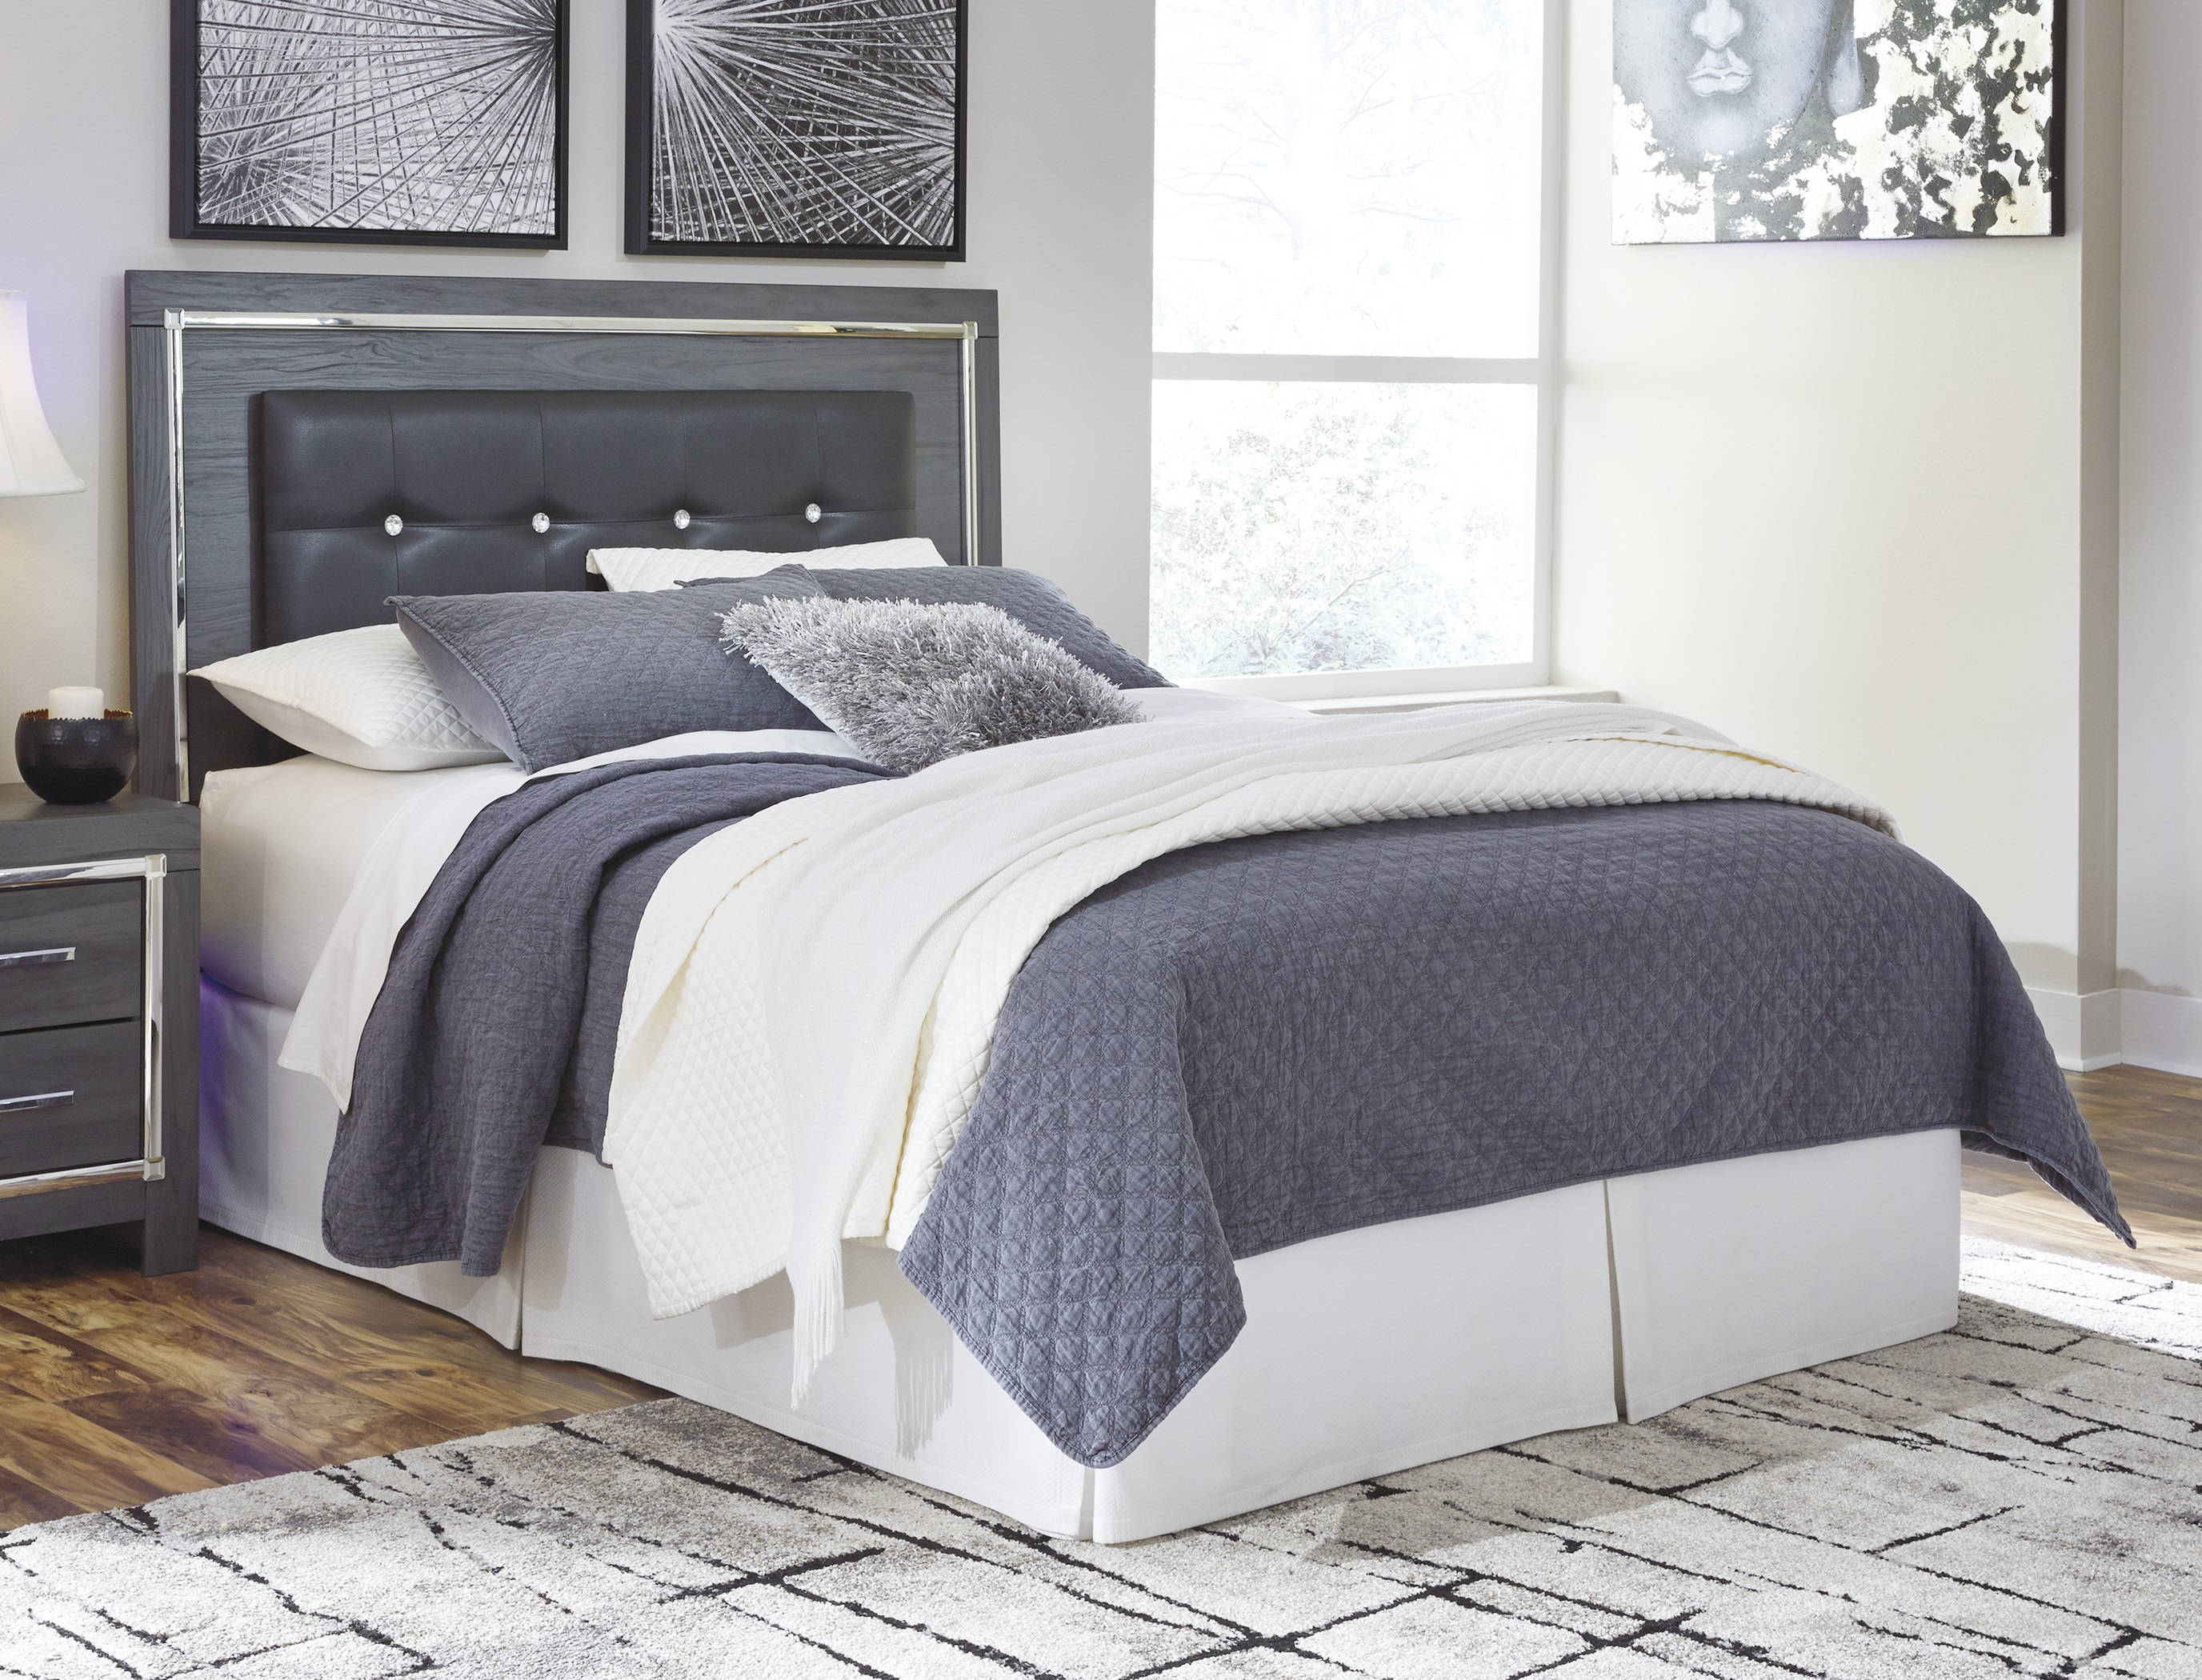 Super Ashley Furniture Lodanna Gray Full Upholstered Panel Headboard Home Interior And Landscaping Ferensignezvosmurscom